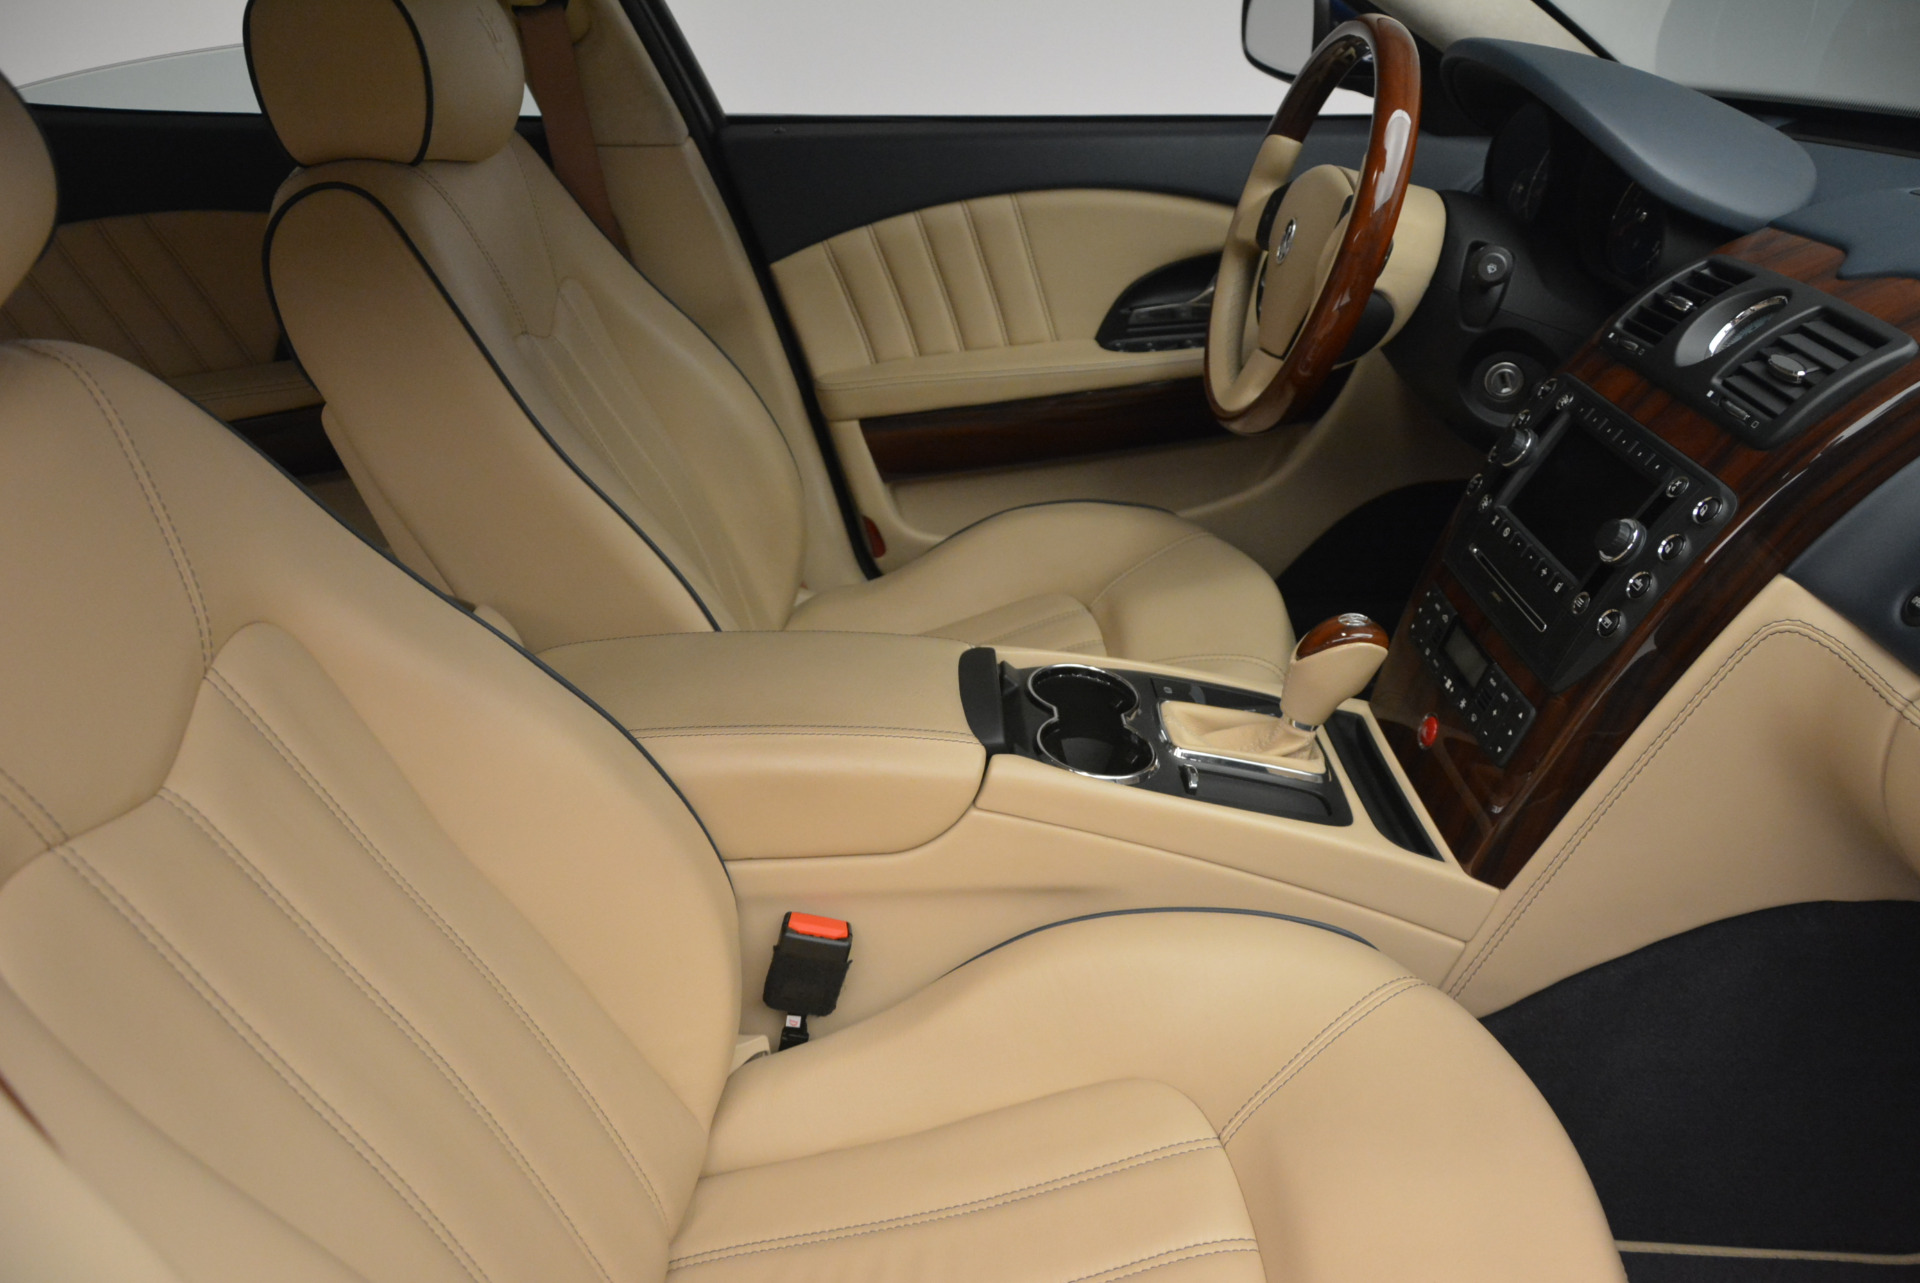 Used 2010 Maserati Quattroporte S For Sale In Greenwich, CT 795_p18